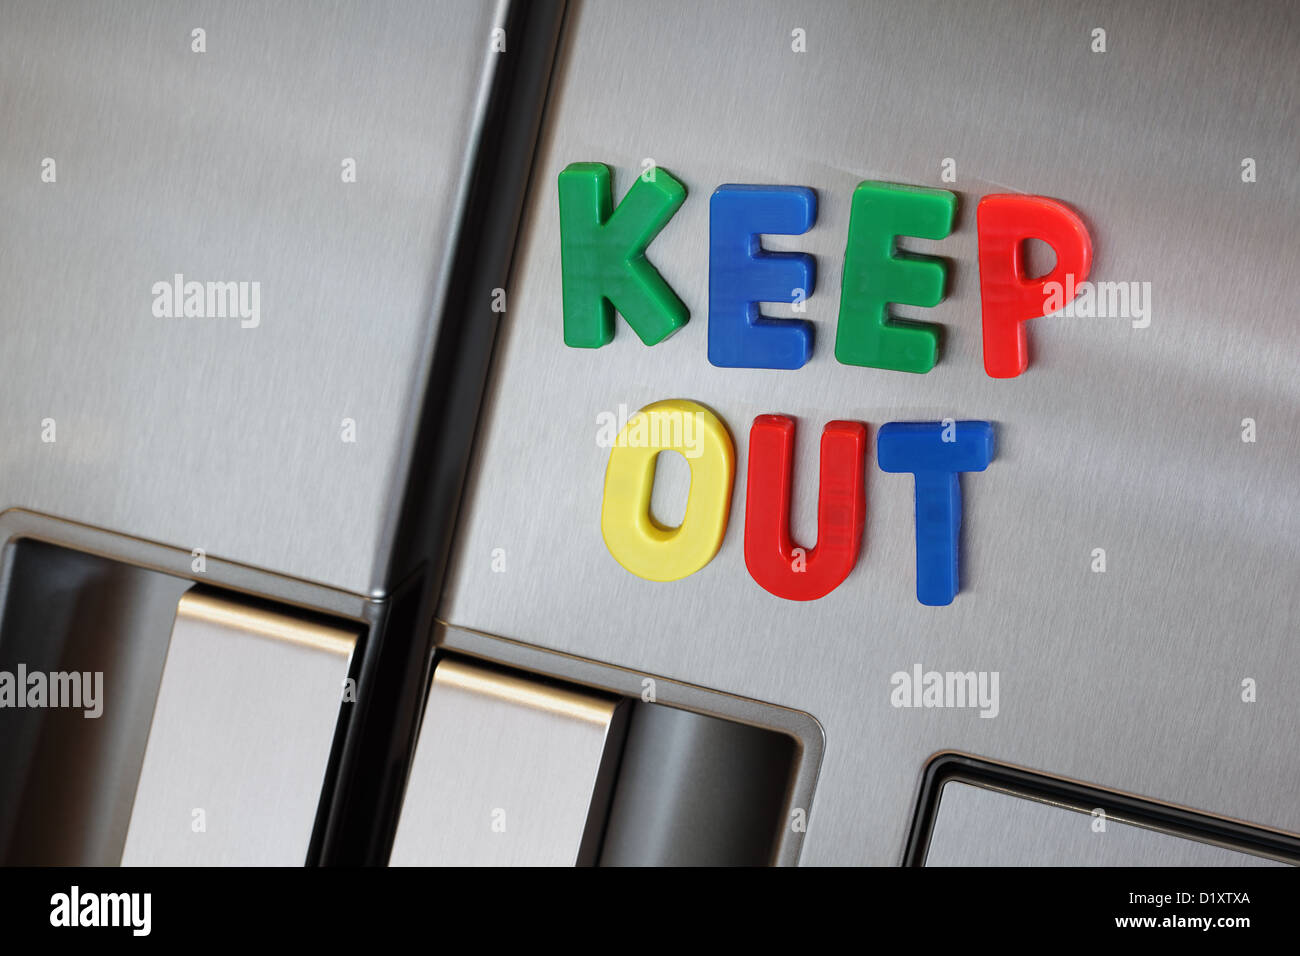 Keep out the refrigerator - Stock Image